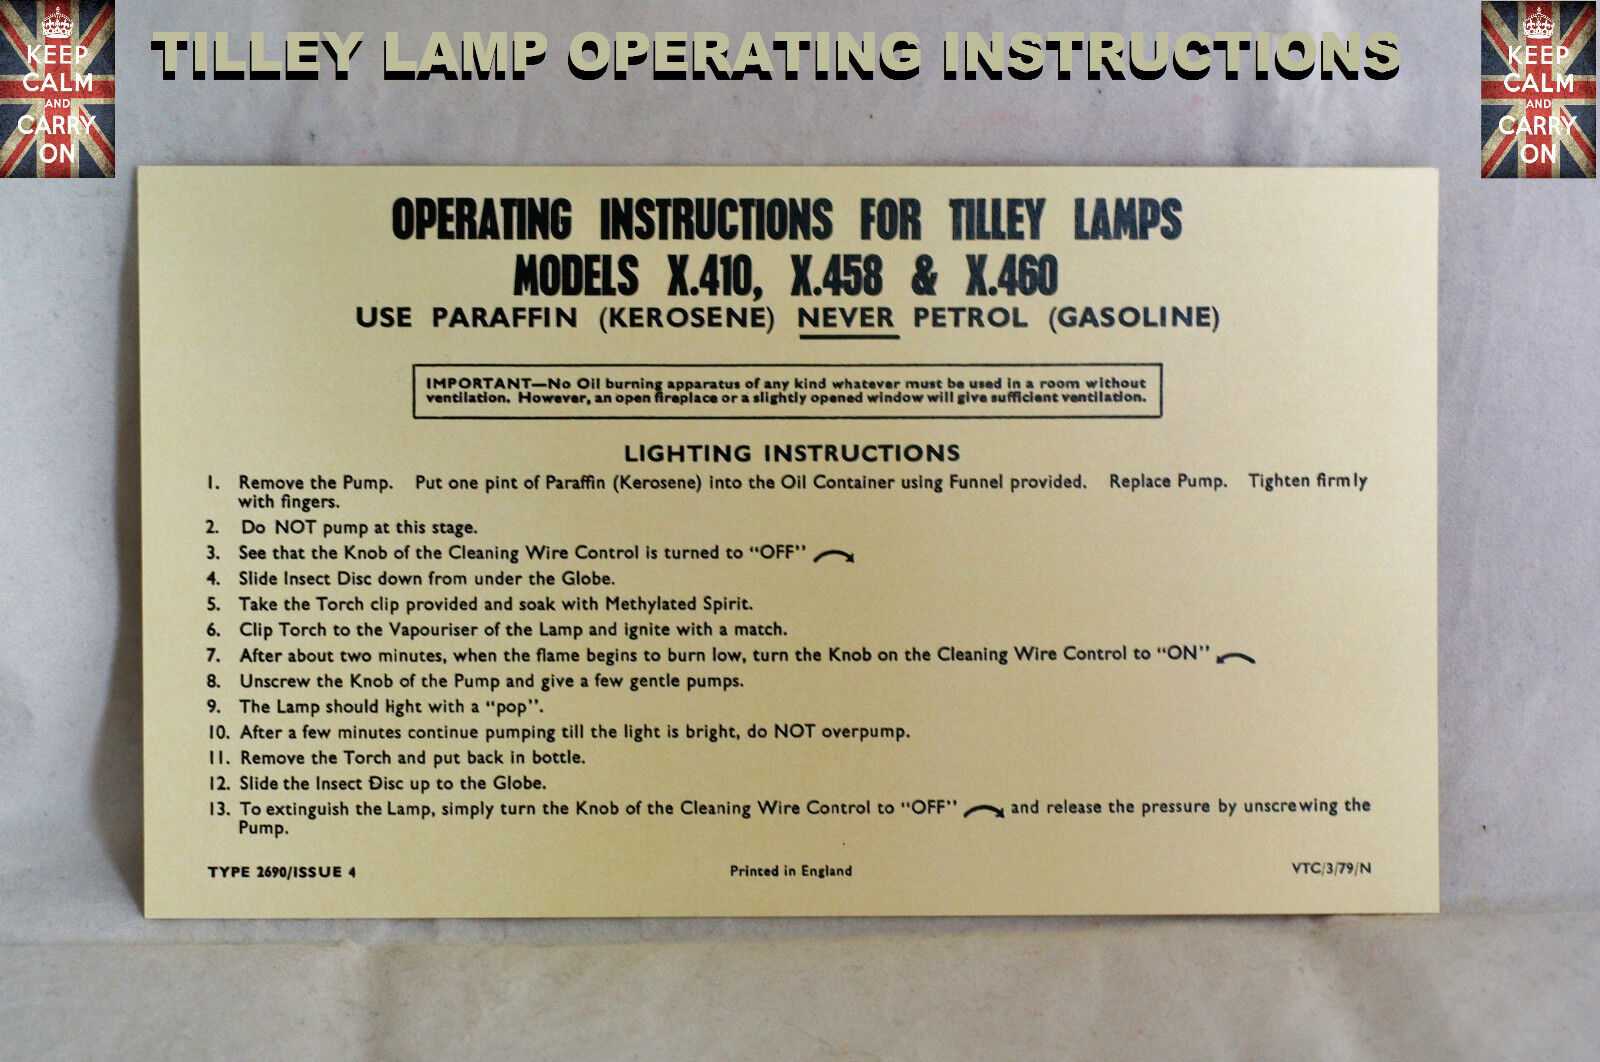 /&  X460 INSTUCTIONS CARD LEAFLET TILLEY LAMP X.410   X.458